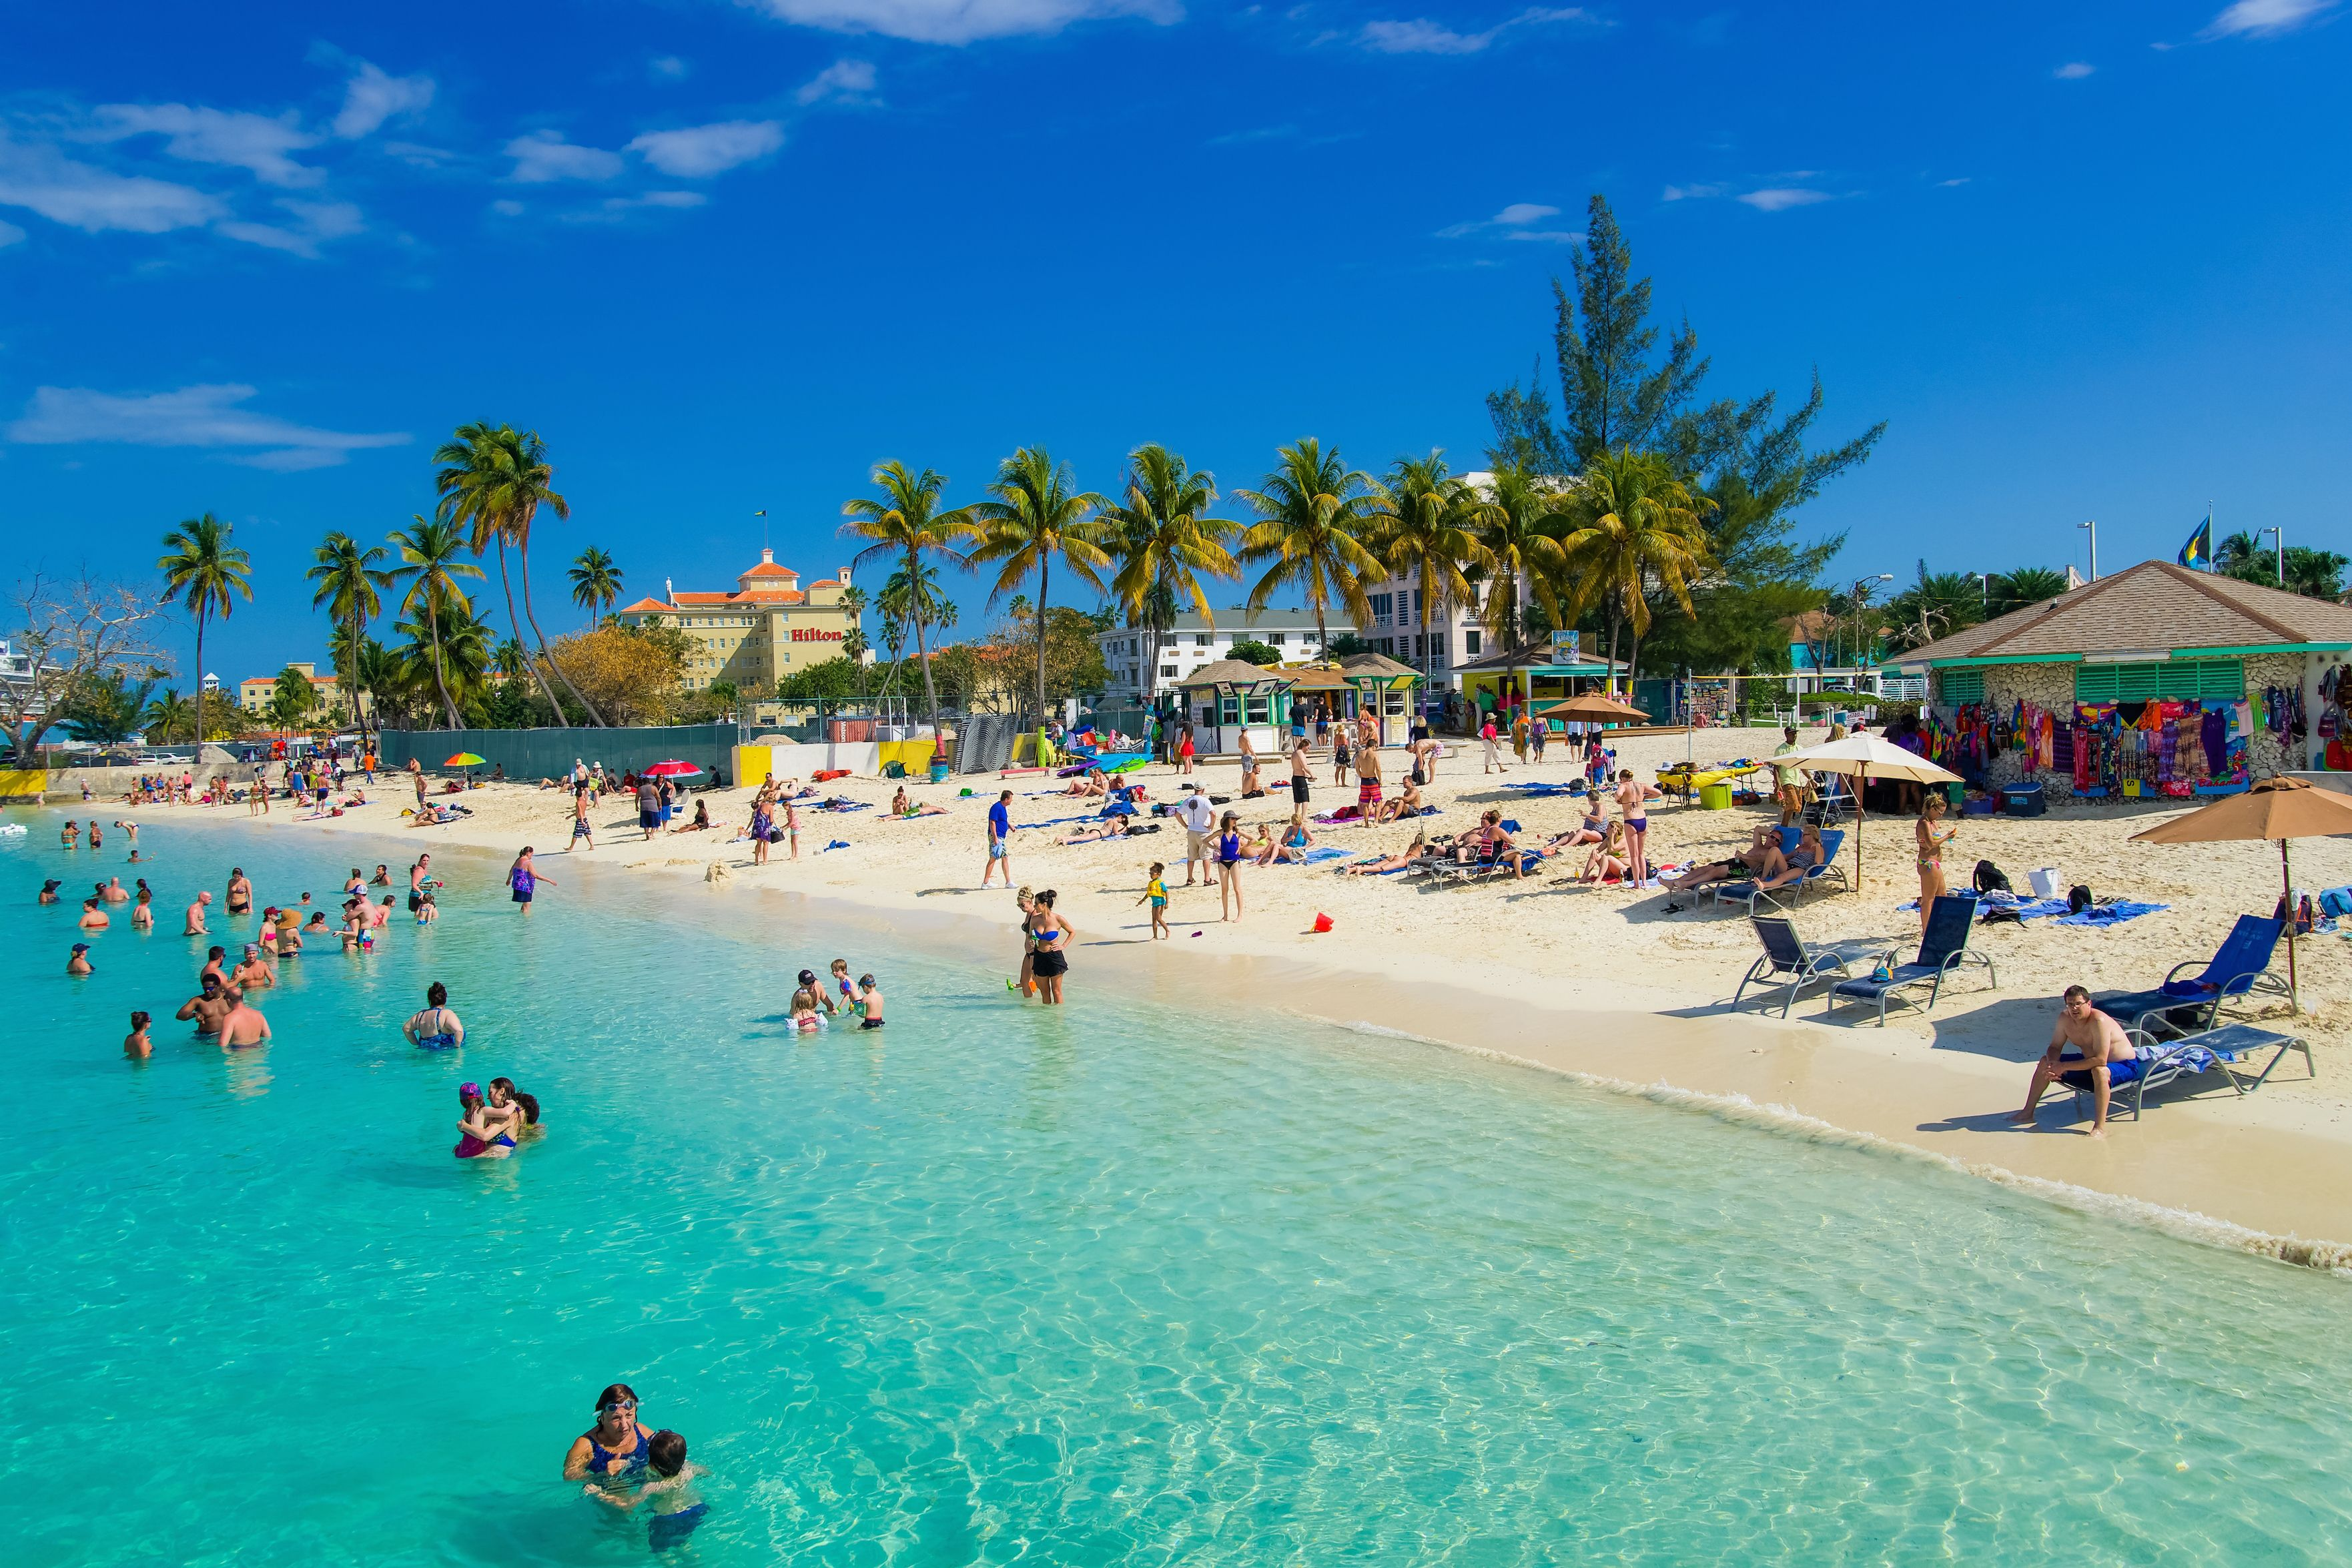 b1285a2838219 I am going to spend a day at the Junkanoo Beach when I visit the Bahamas